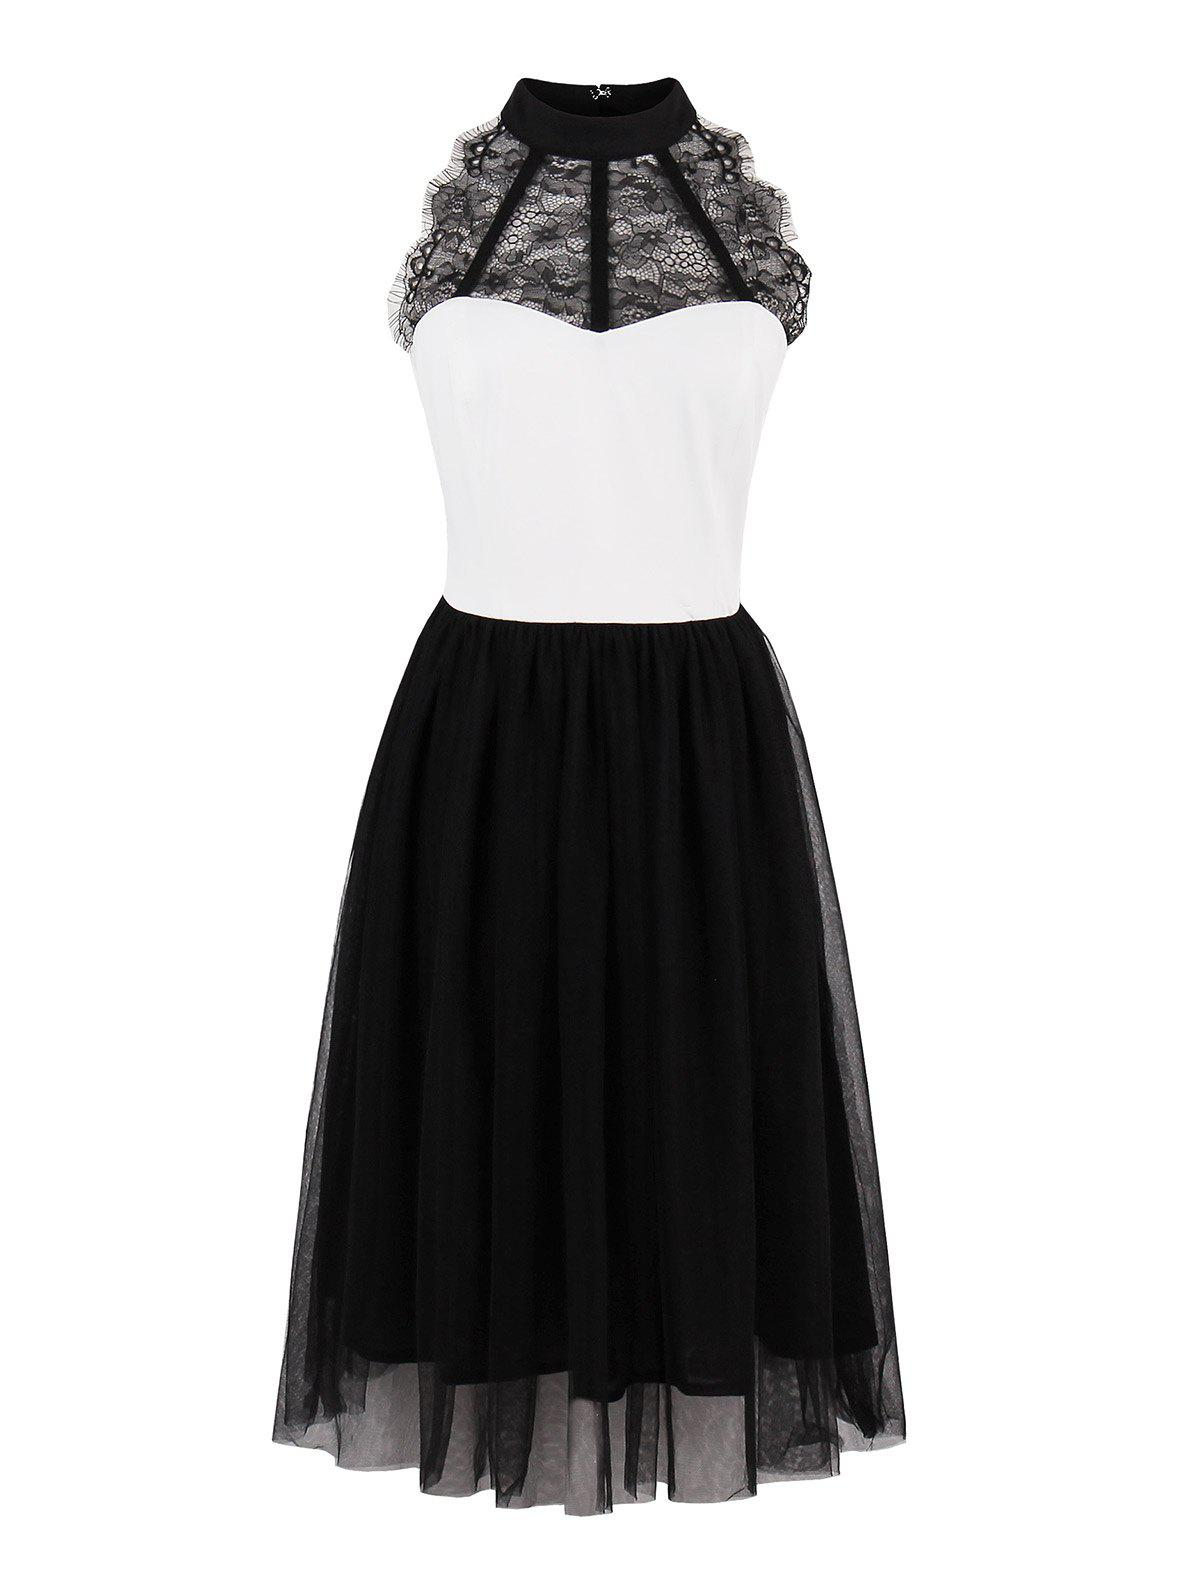 Lace Panel Color Block Pin Up Dress - Blanc Noir M